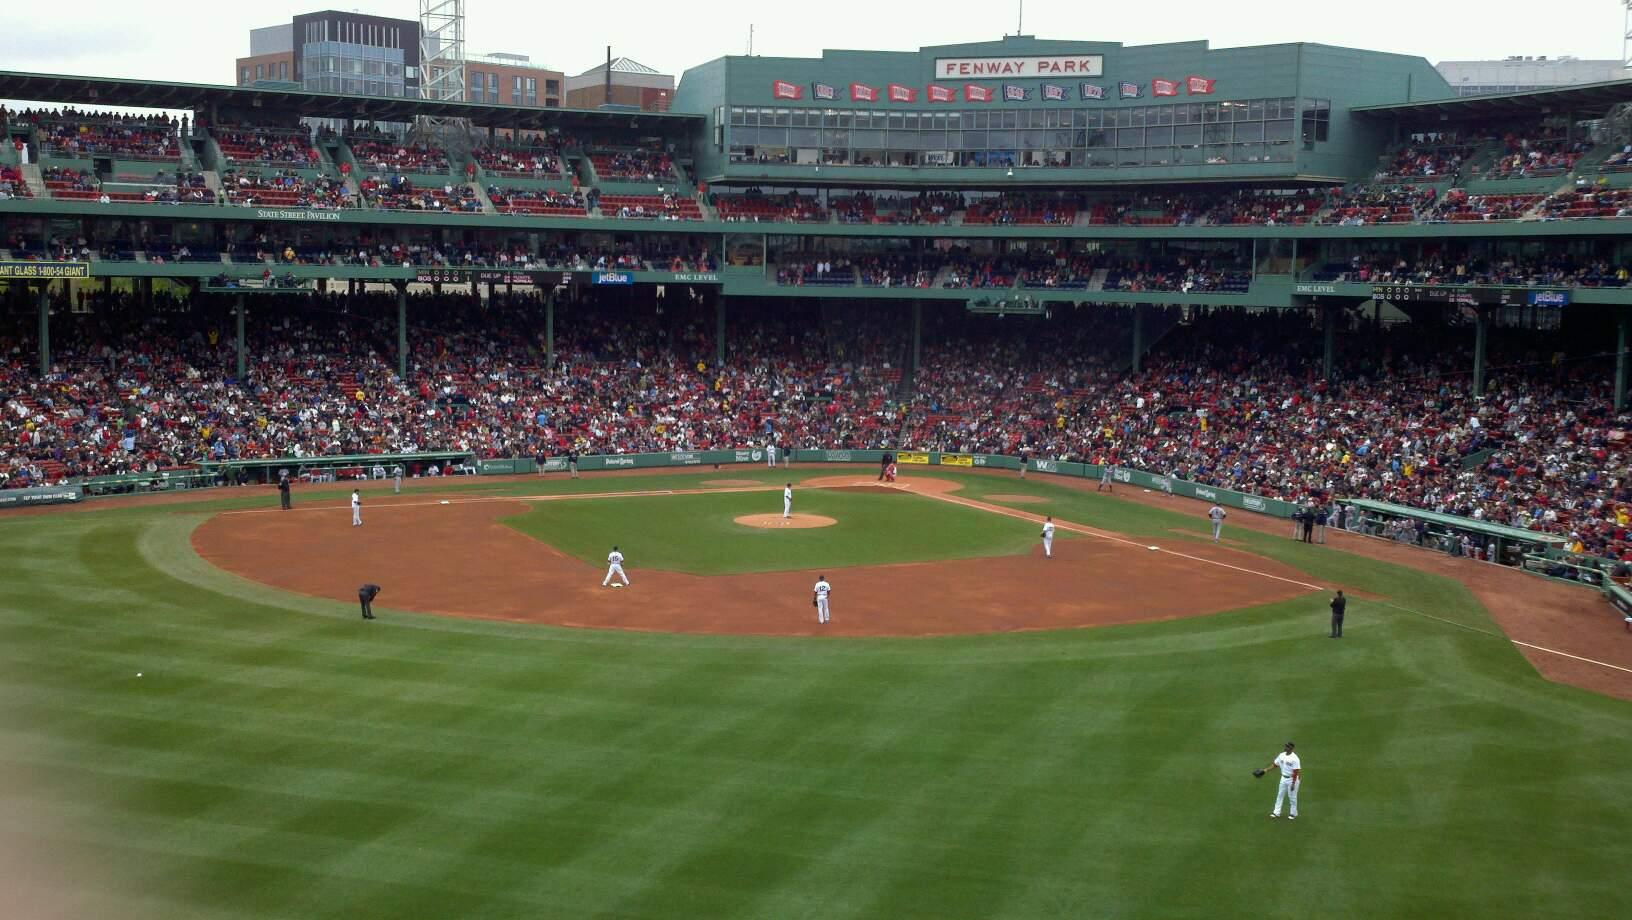 Fenway Park Section Green Monster 8 Row 2 Seat 6